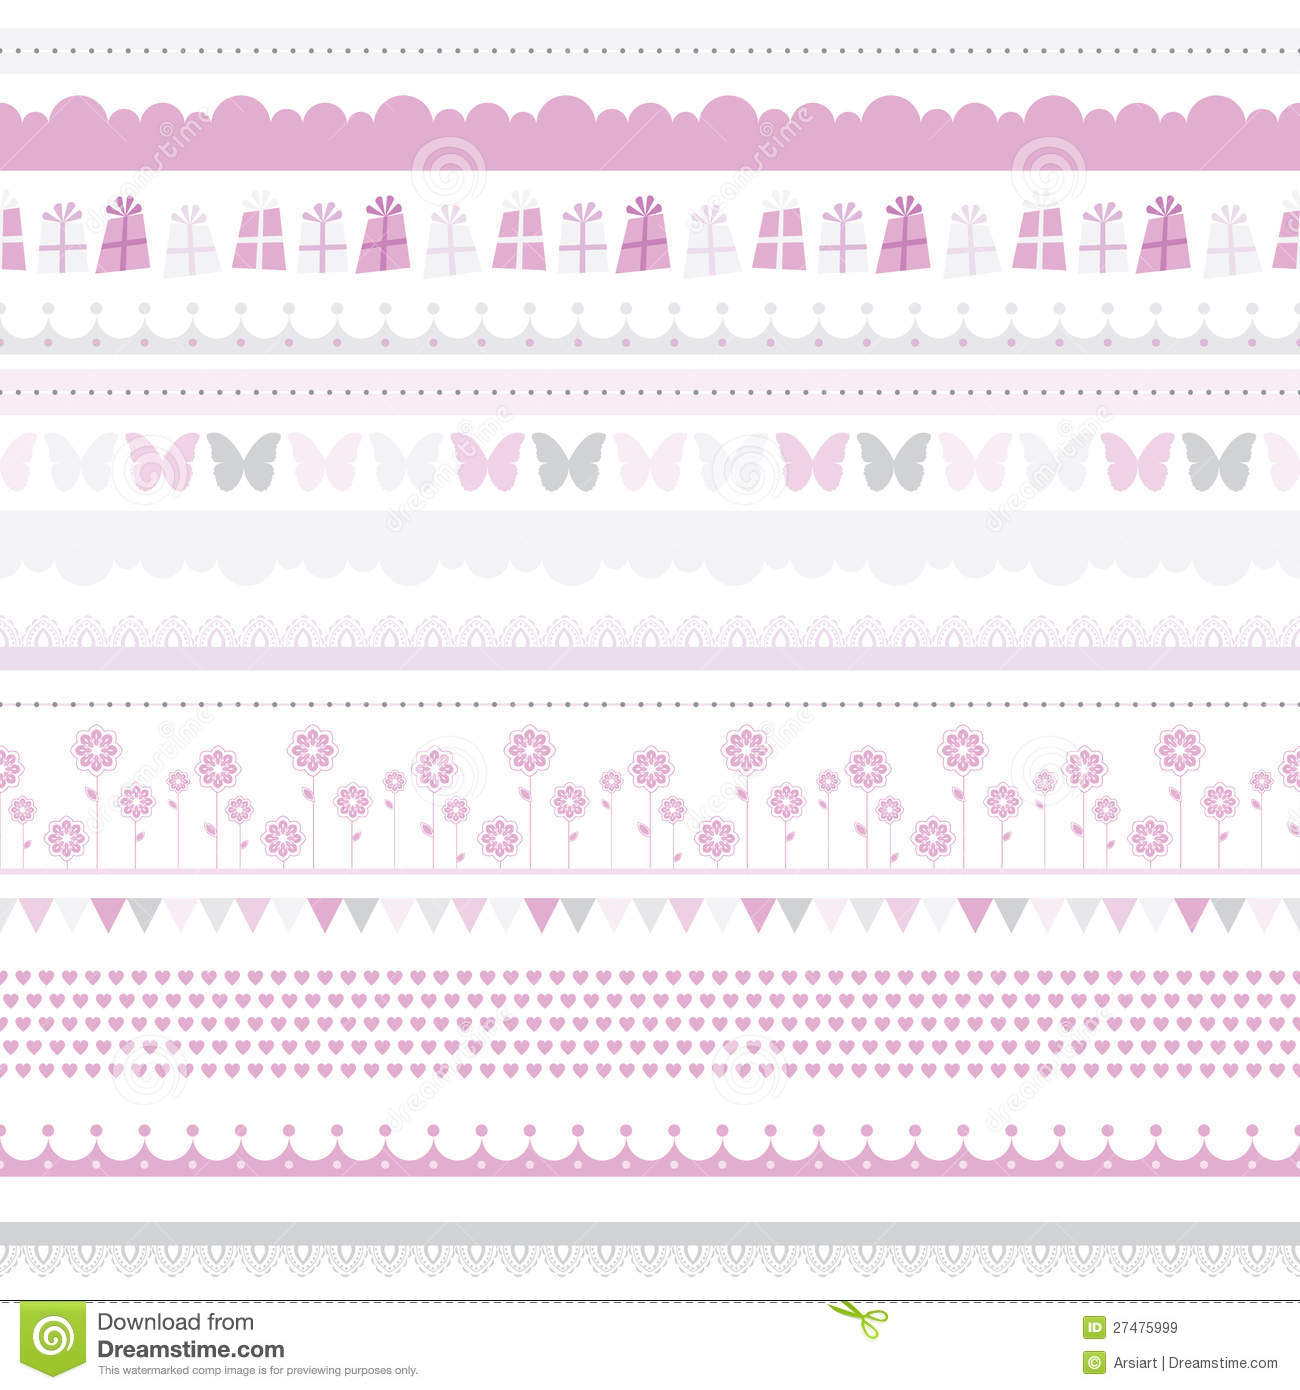 Cute baby clipart patterns clipart library stock Cute baby clipart patterns - ClipartFest clipart library stock